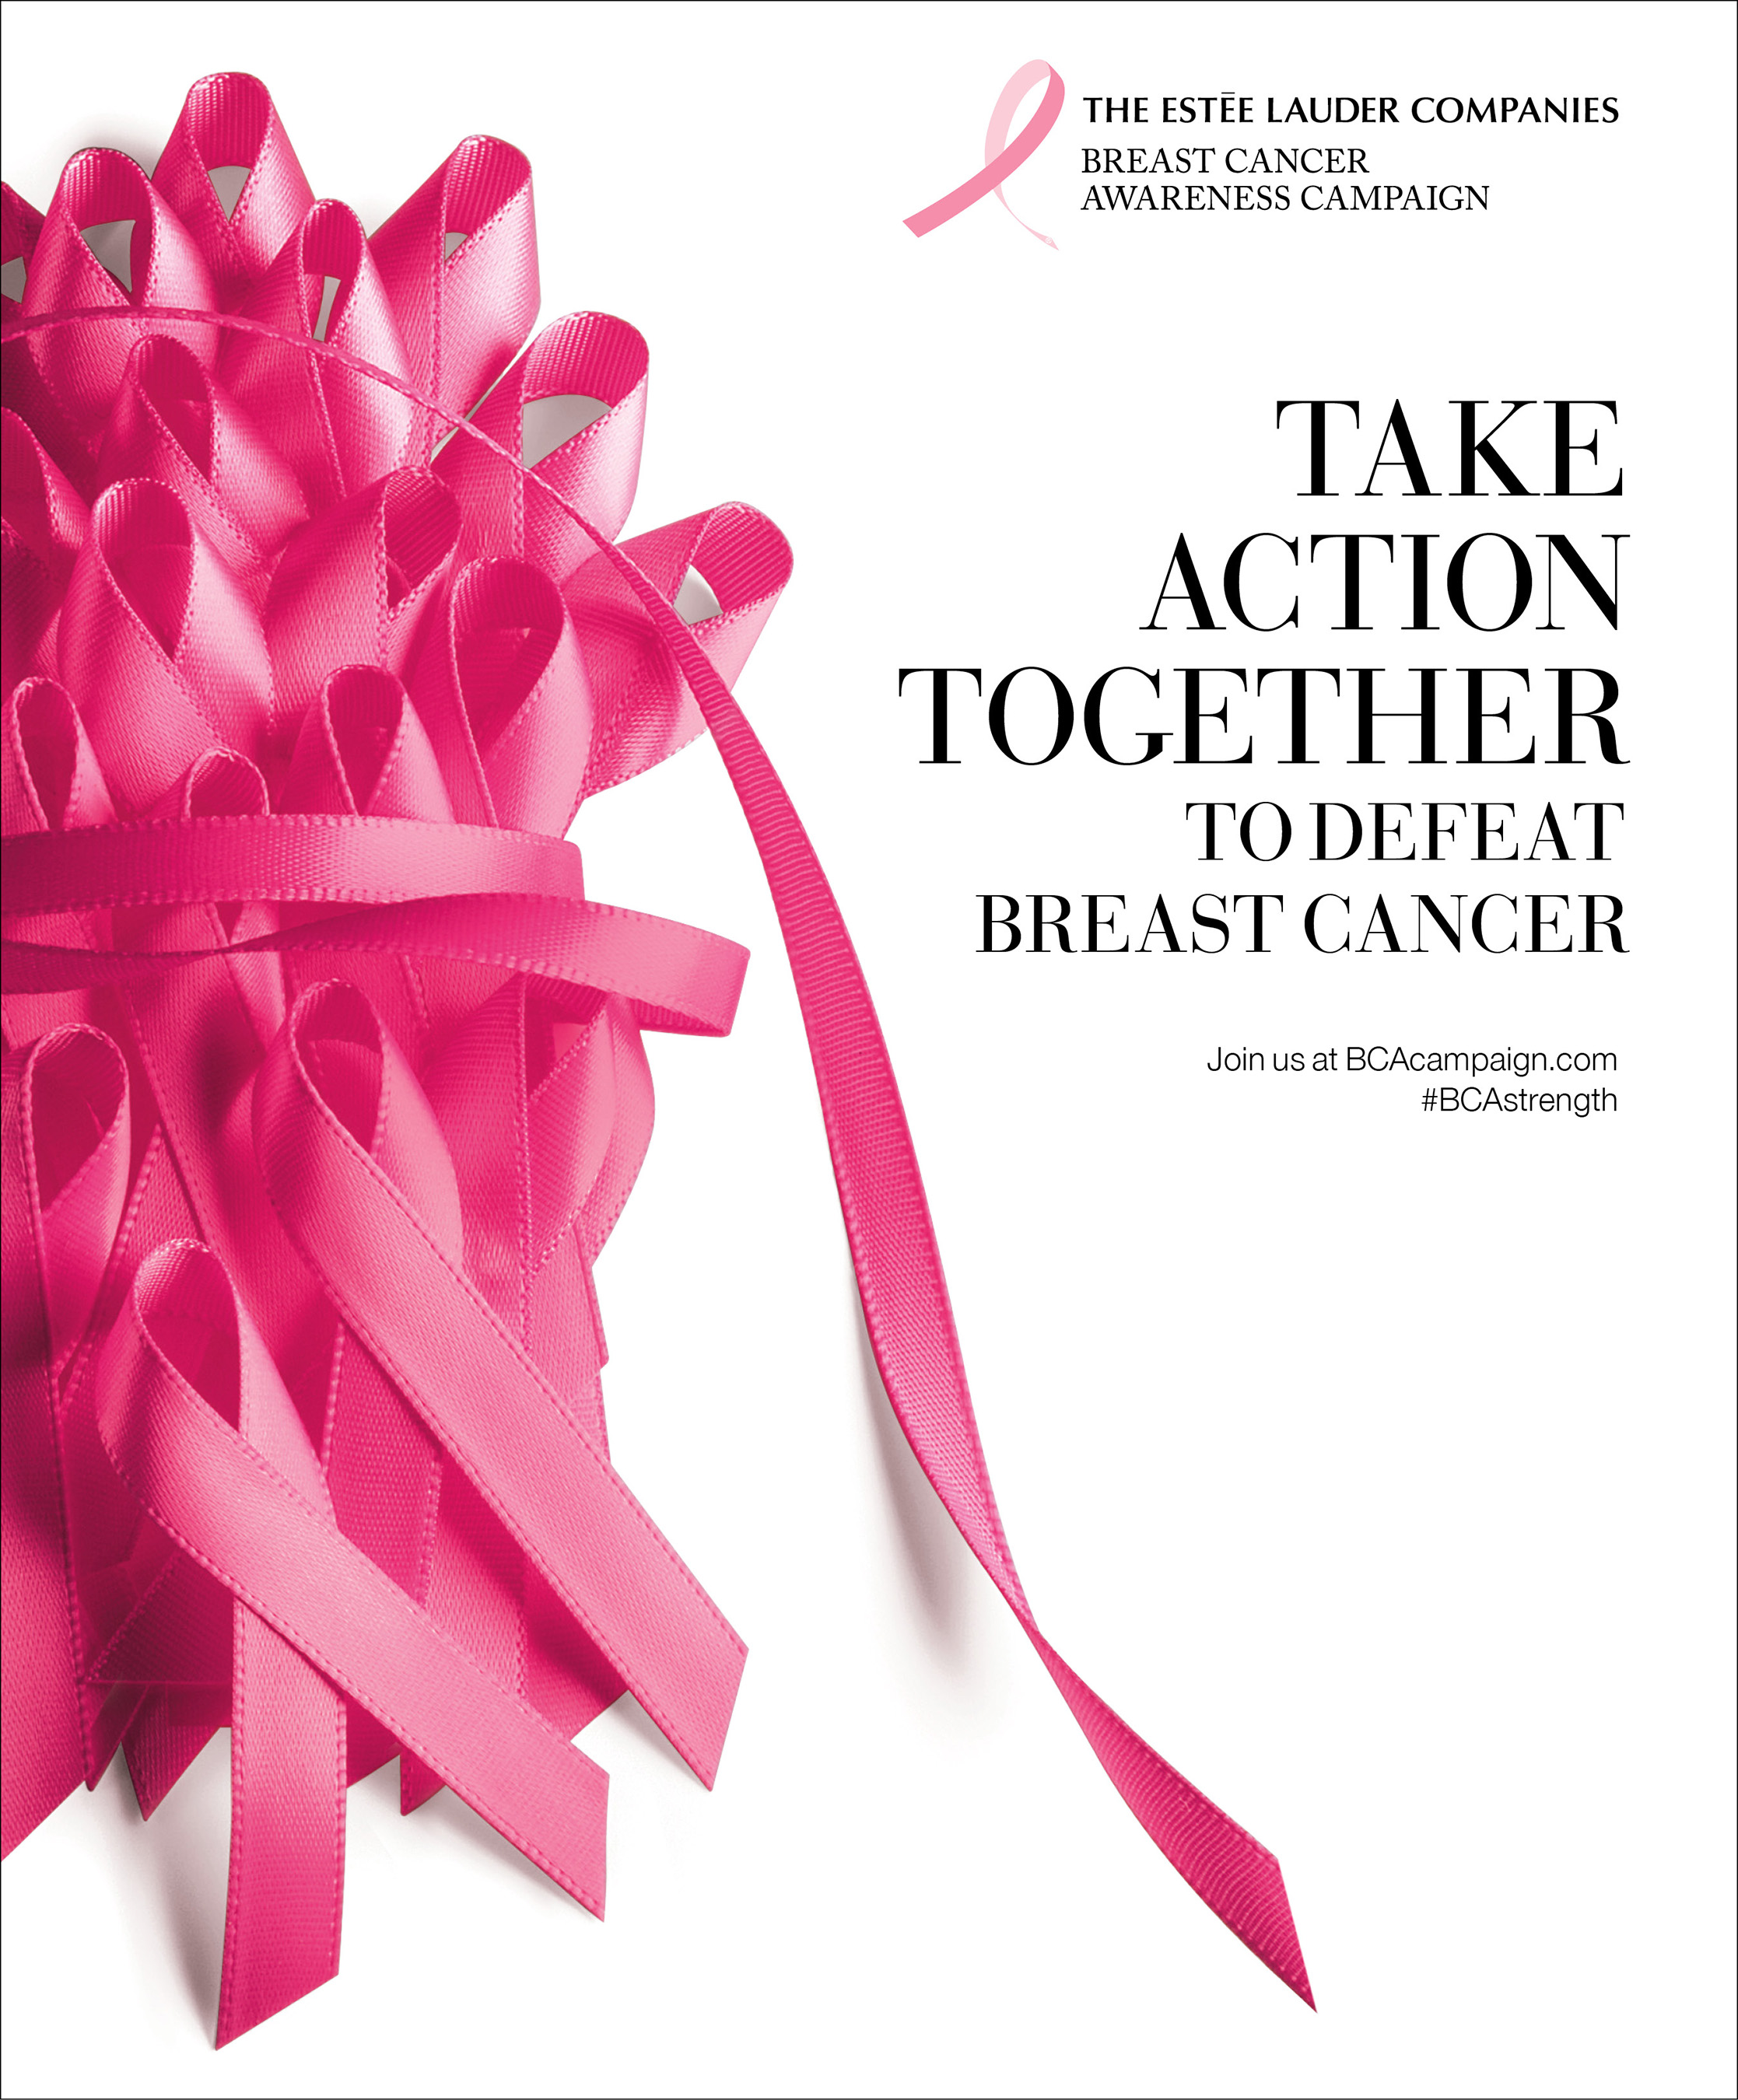 The Estée Lauder Companies 2016 Breast Cancer Awareness Bca